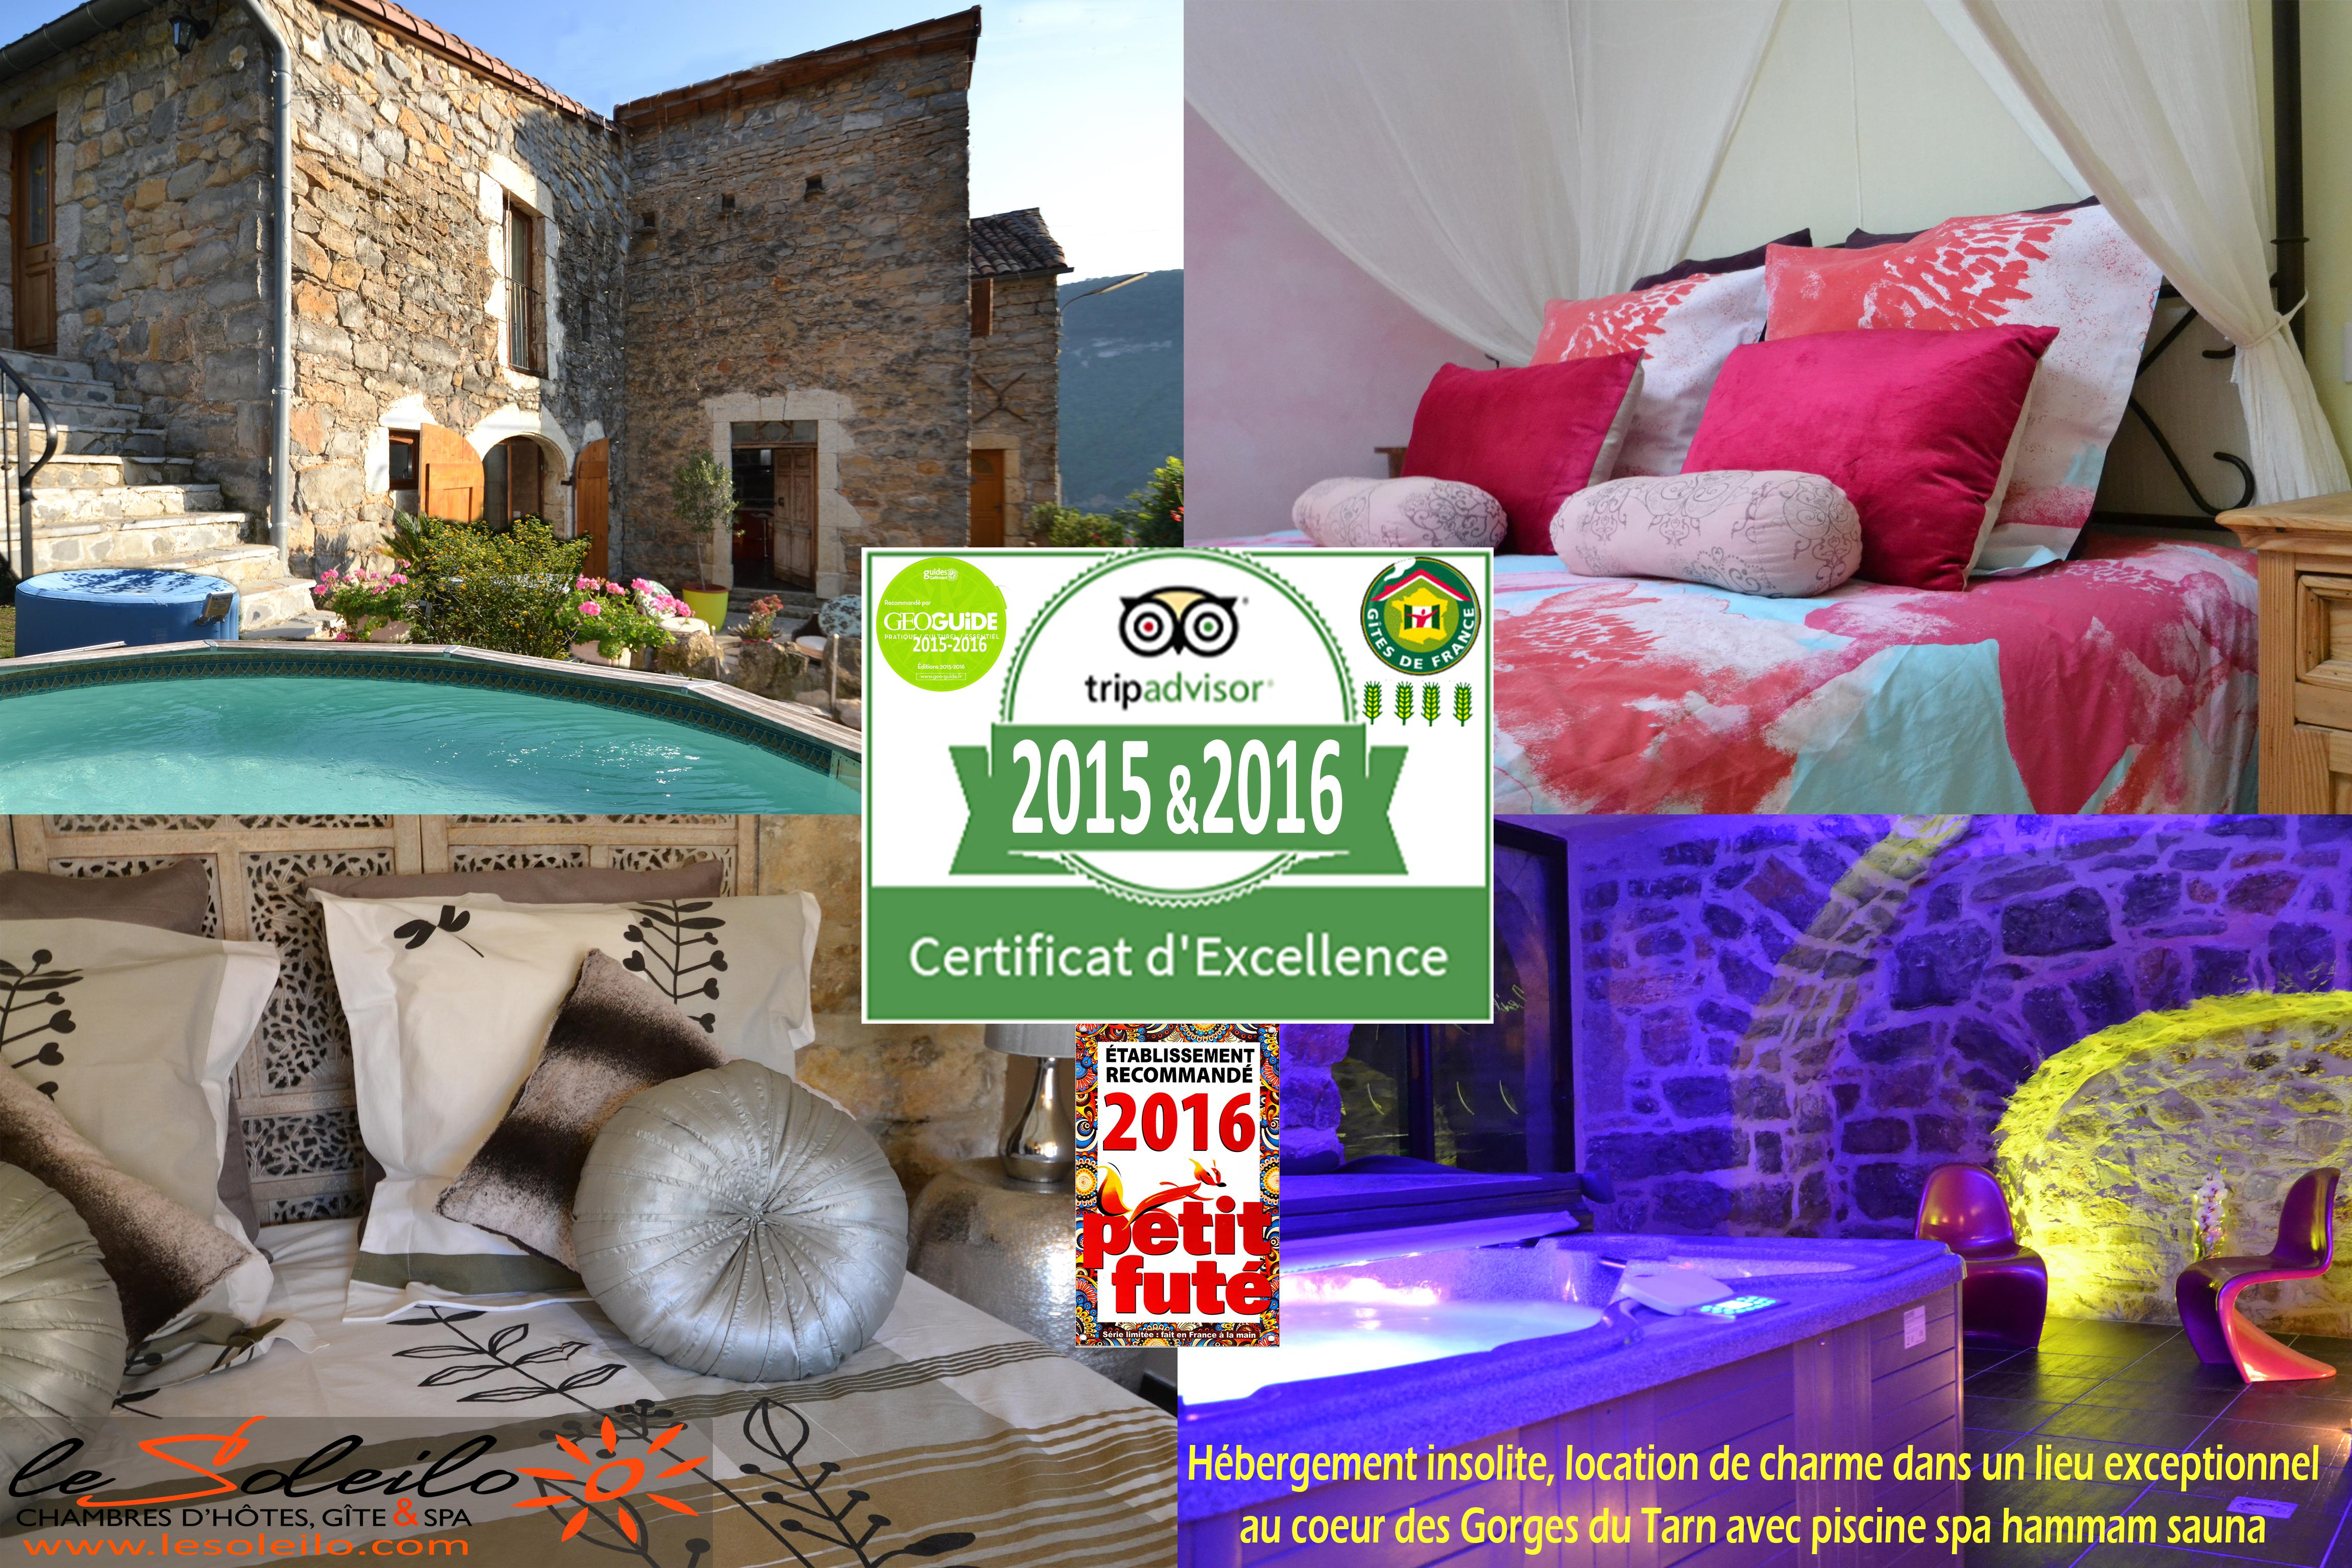 Certificate of excellence 2015 and 2016, the Soleilo, elected quality holiday accommodation in Aveyron Gorges of the Tarn by Tripadvisor and recommended by the Geoguide Lot Aveyron Tarn and by Petit Futé Aveyron